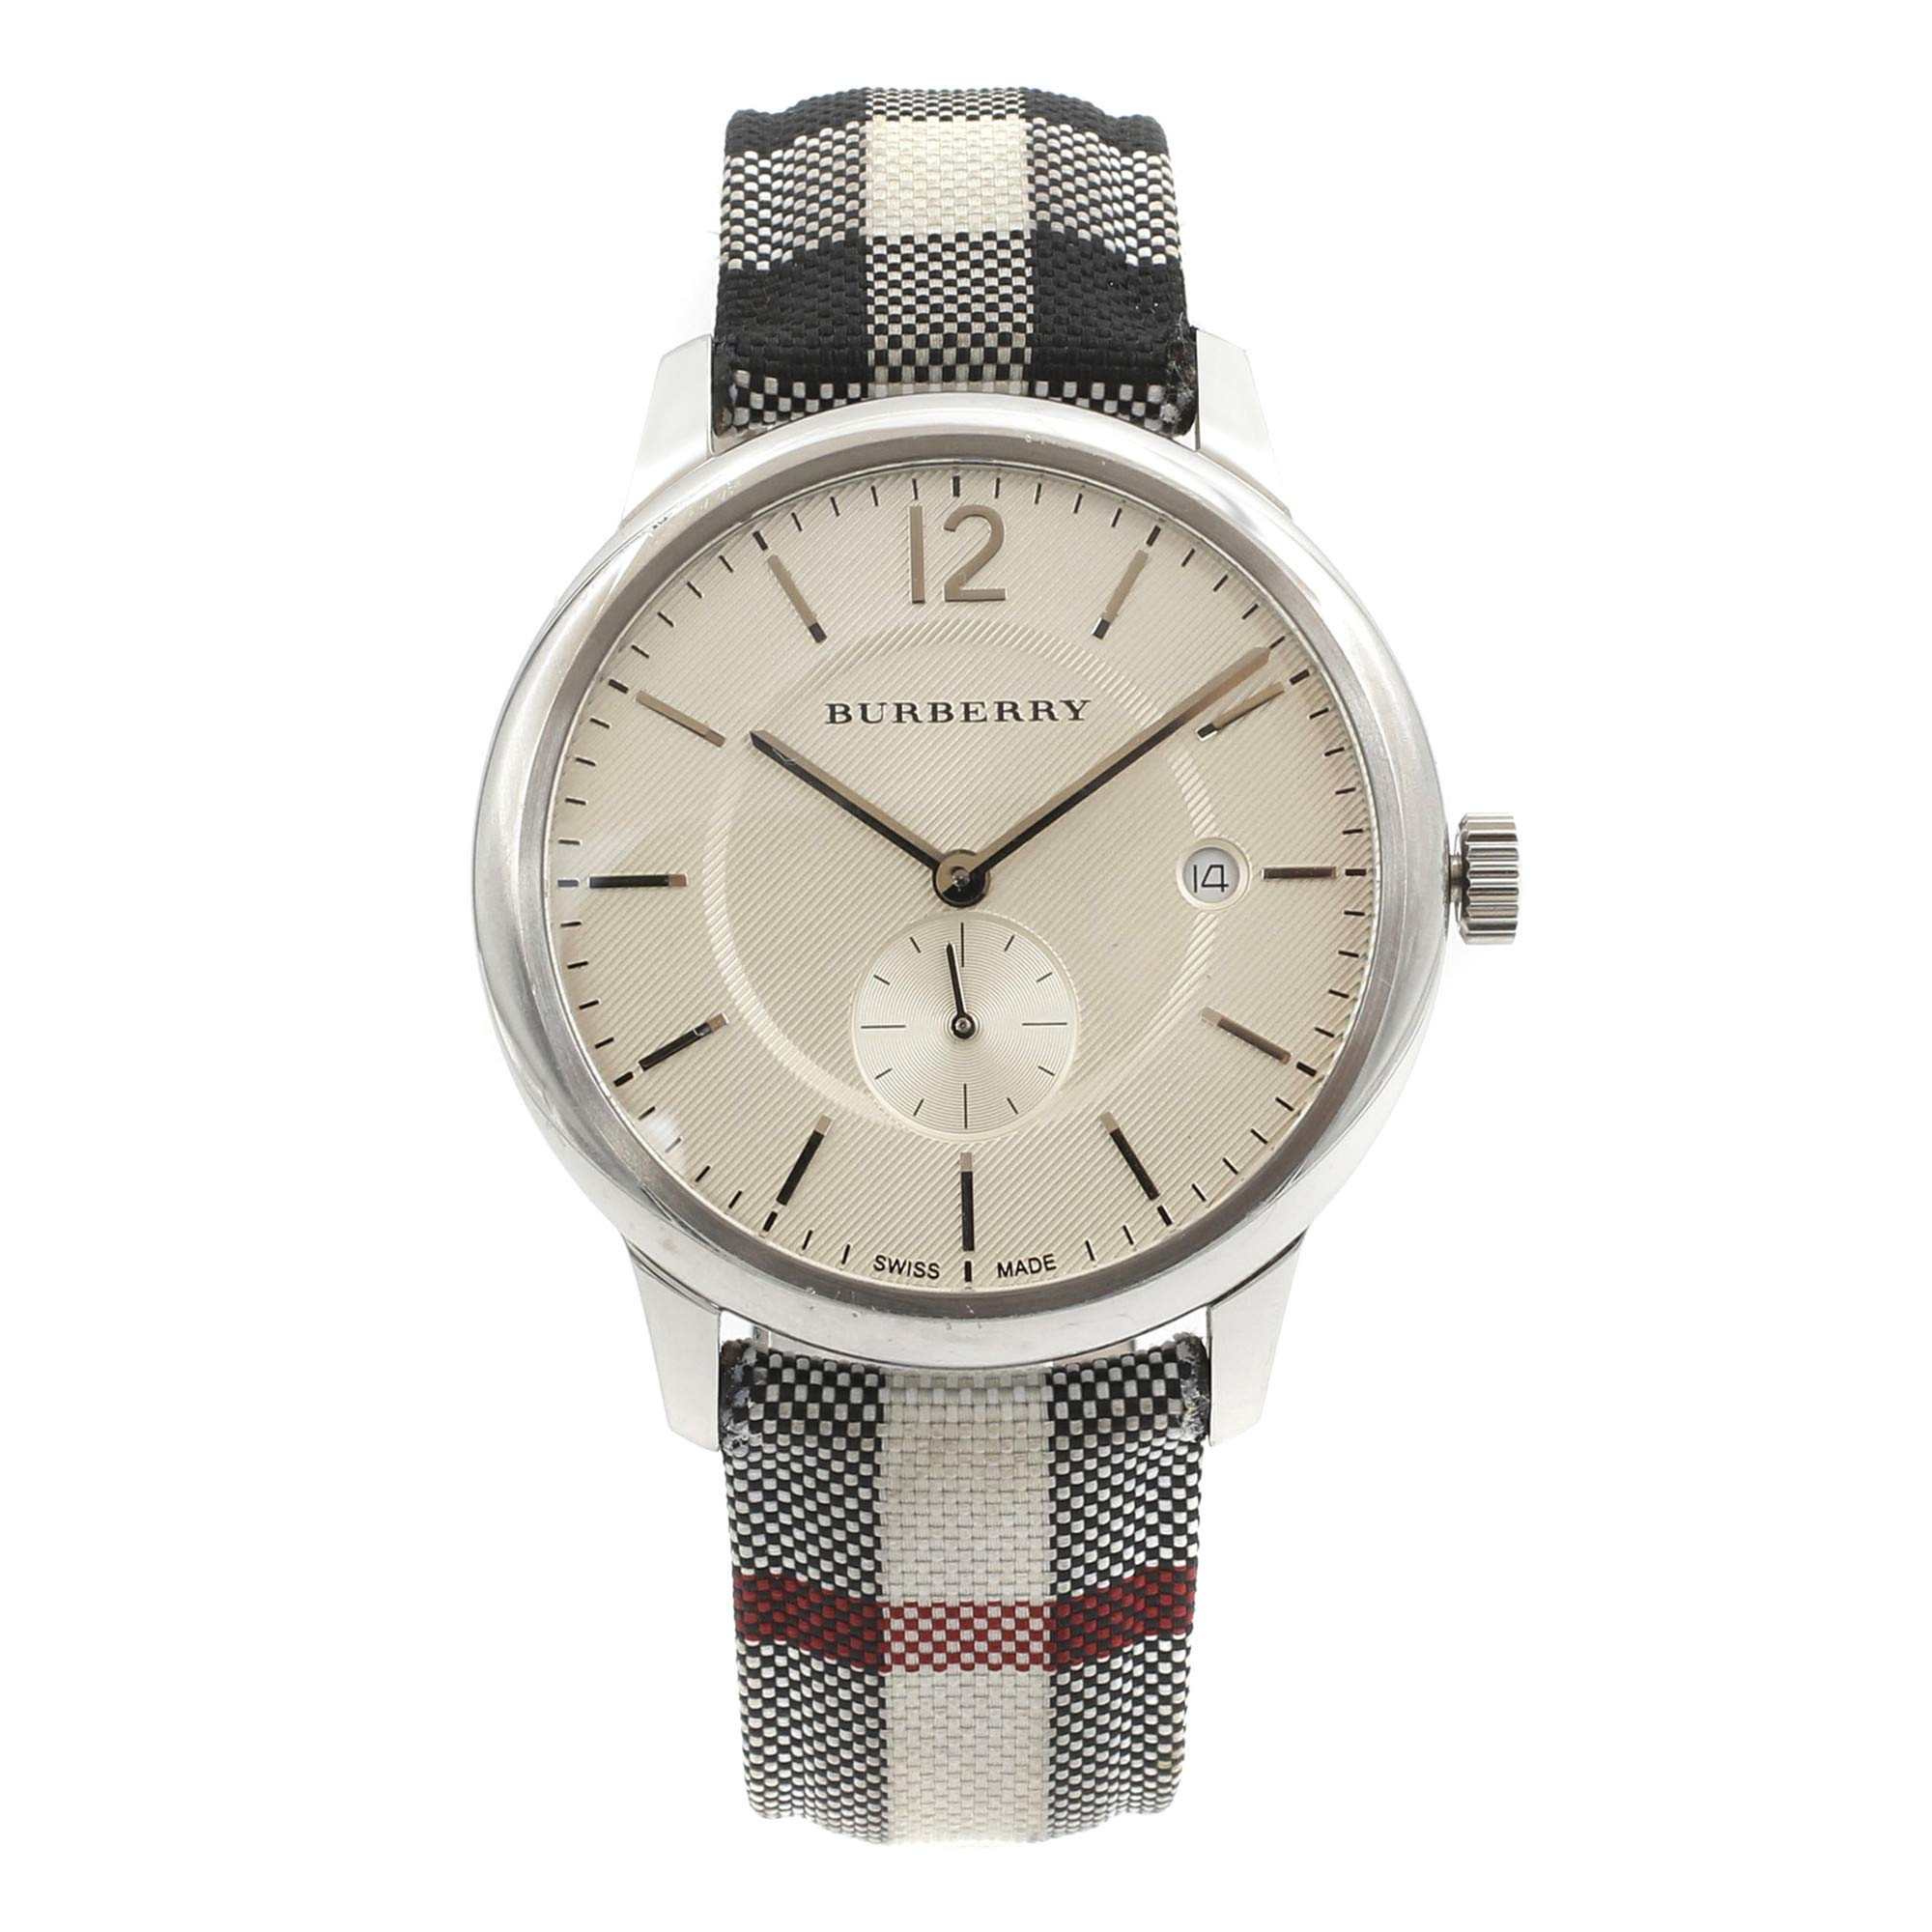 Burberry The Classic Round Quartz Male Watch BU10002 (Certified Pre-Owned)